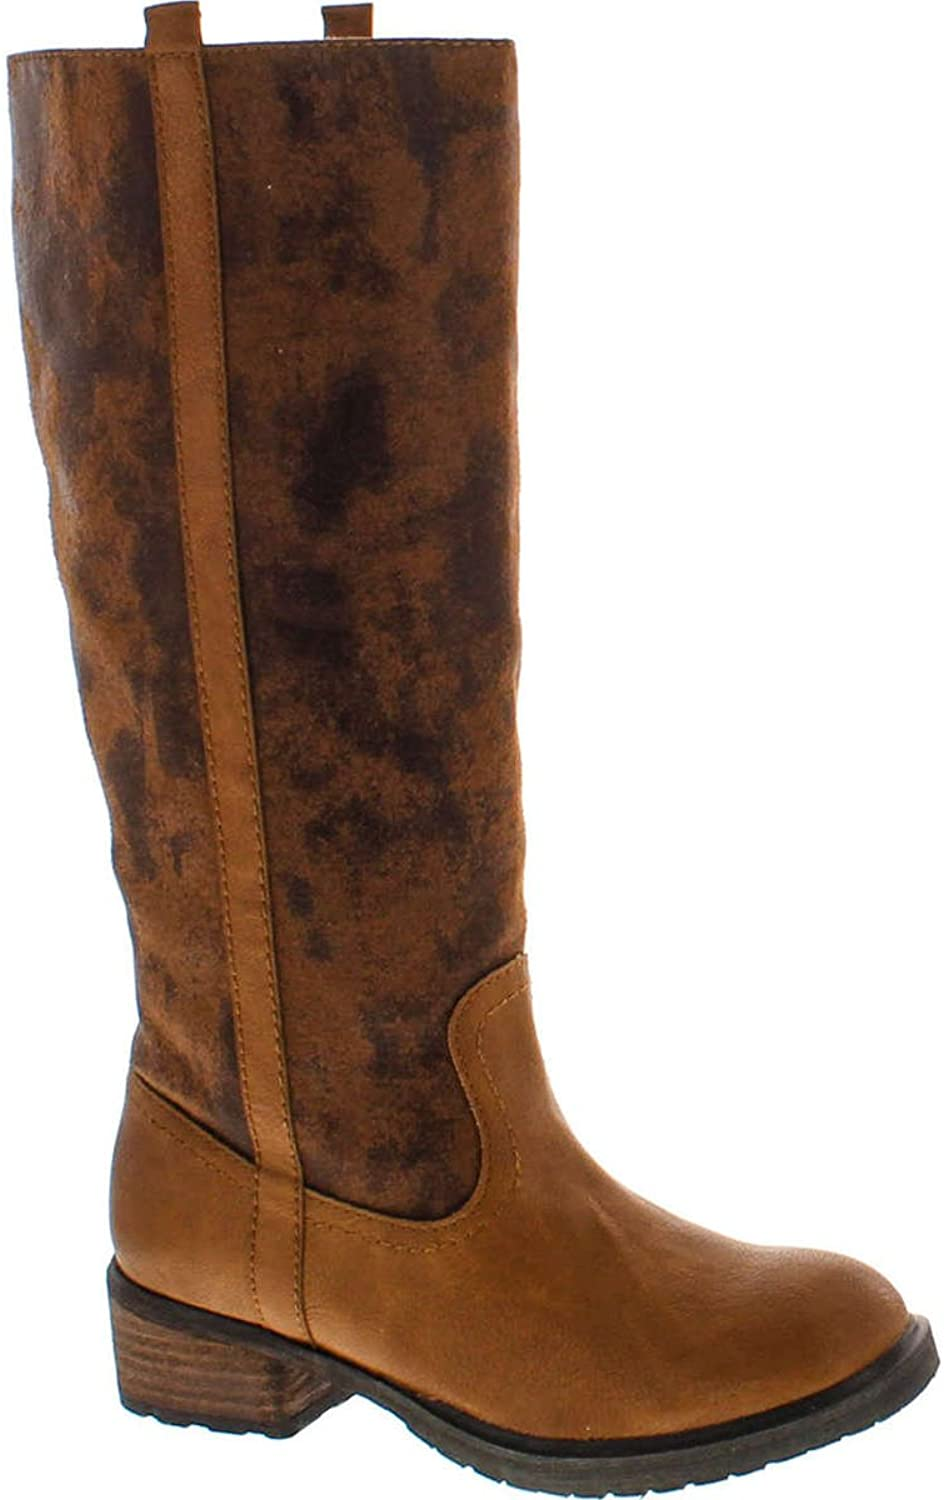 Volatile Womens Wilkes Riding Boots,Tan,7.5